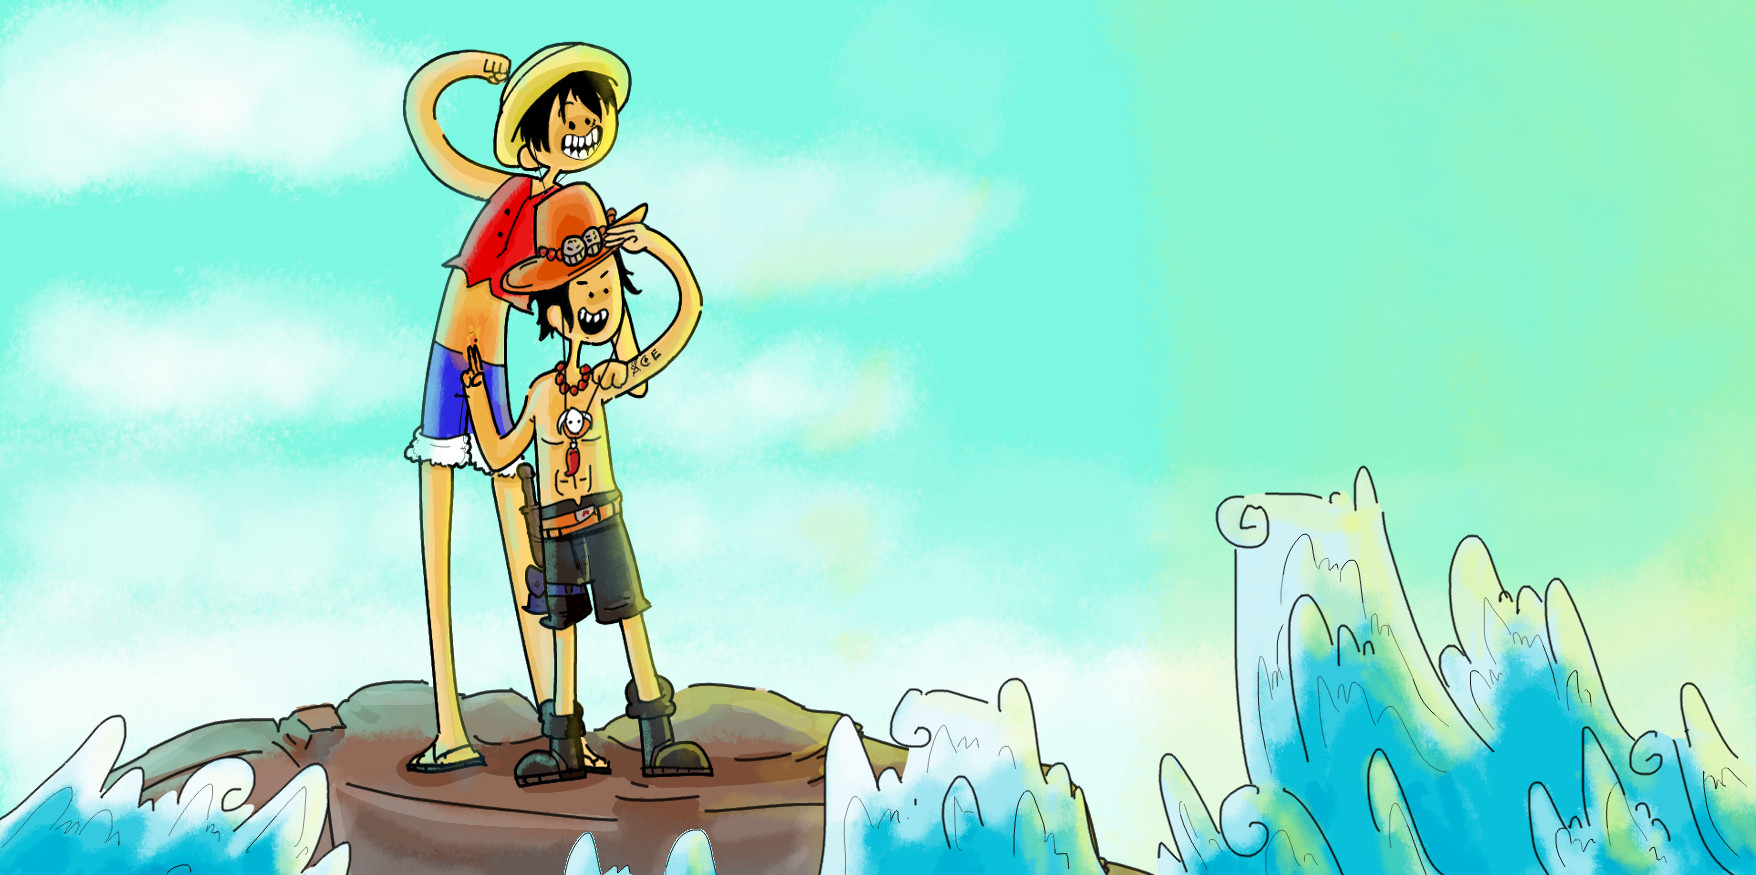 One piece characters in Adventure Time's style